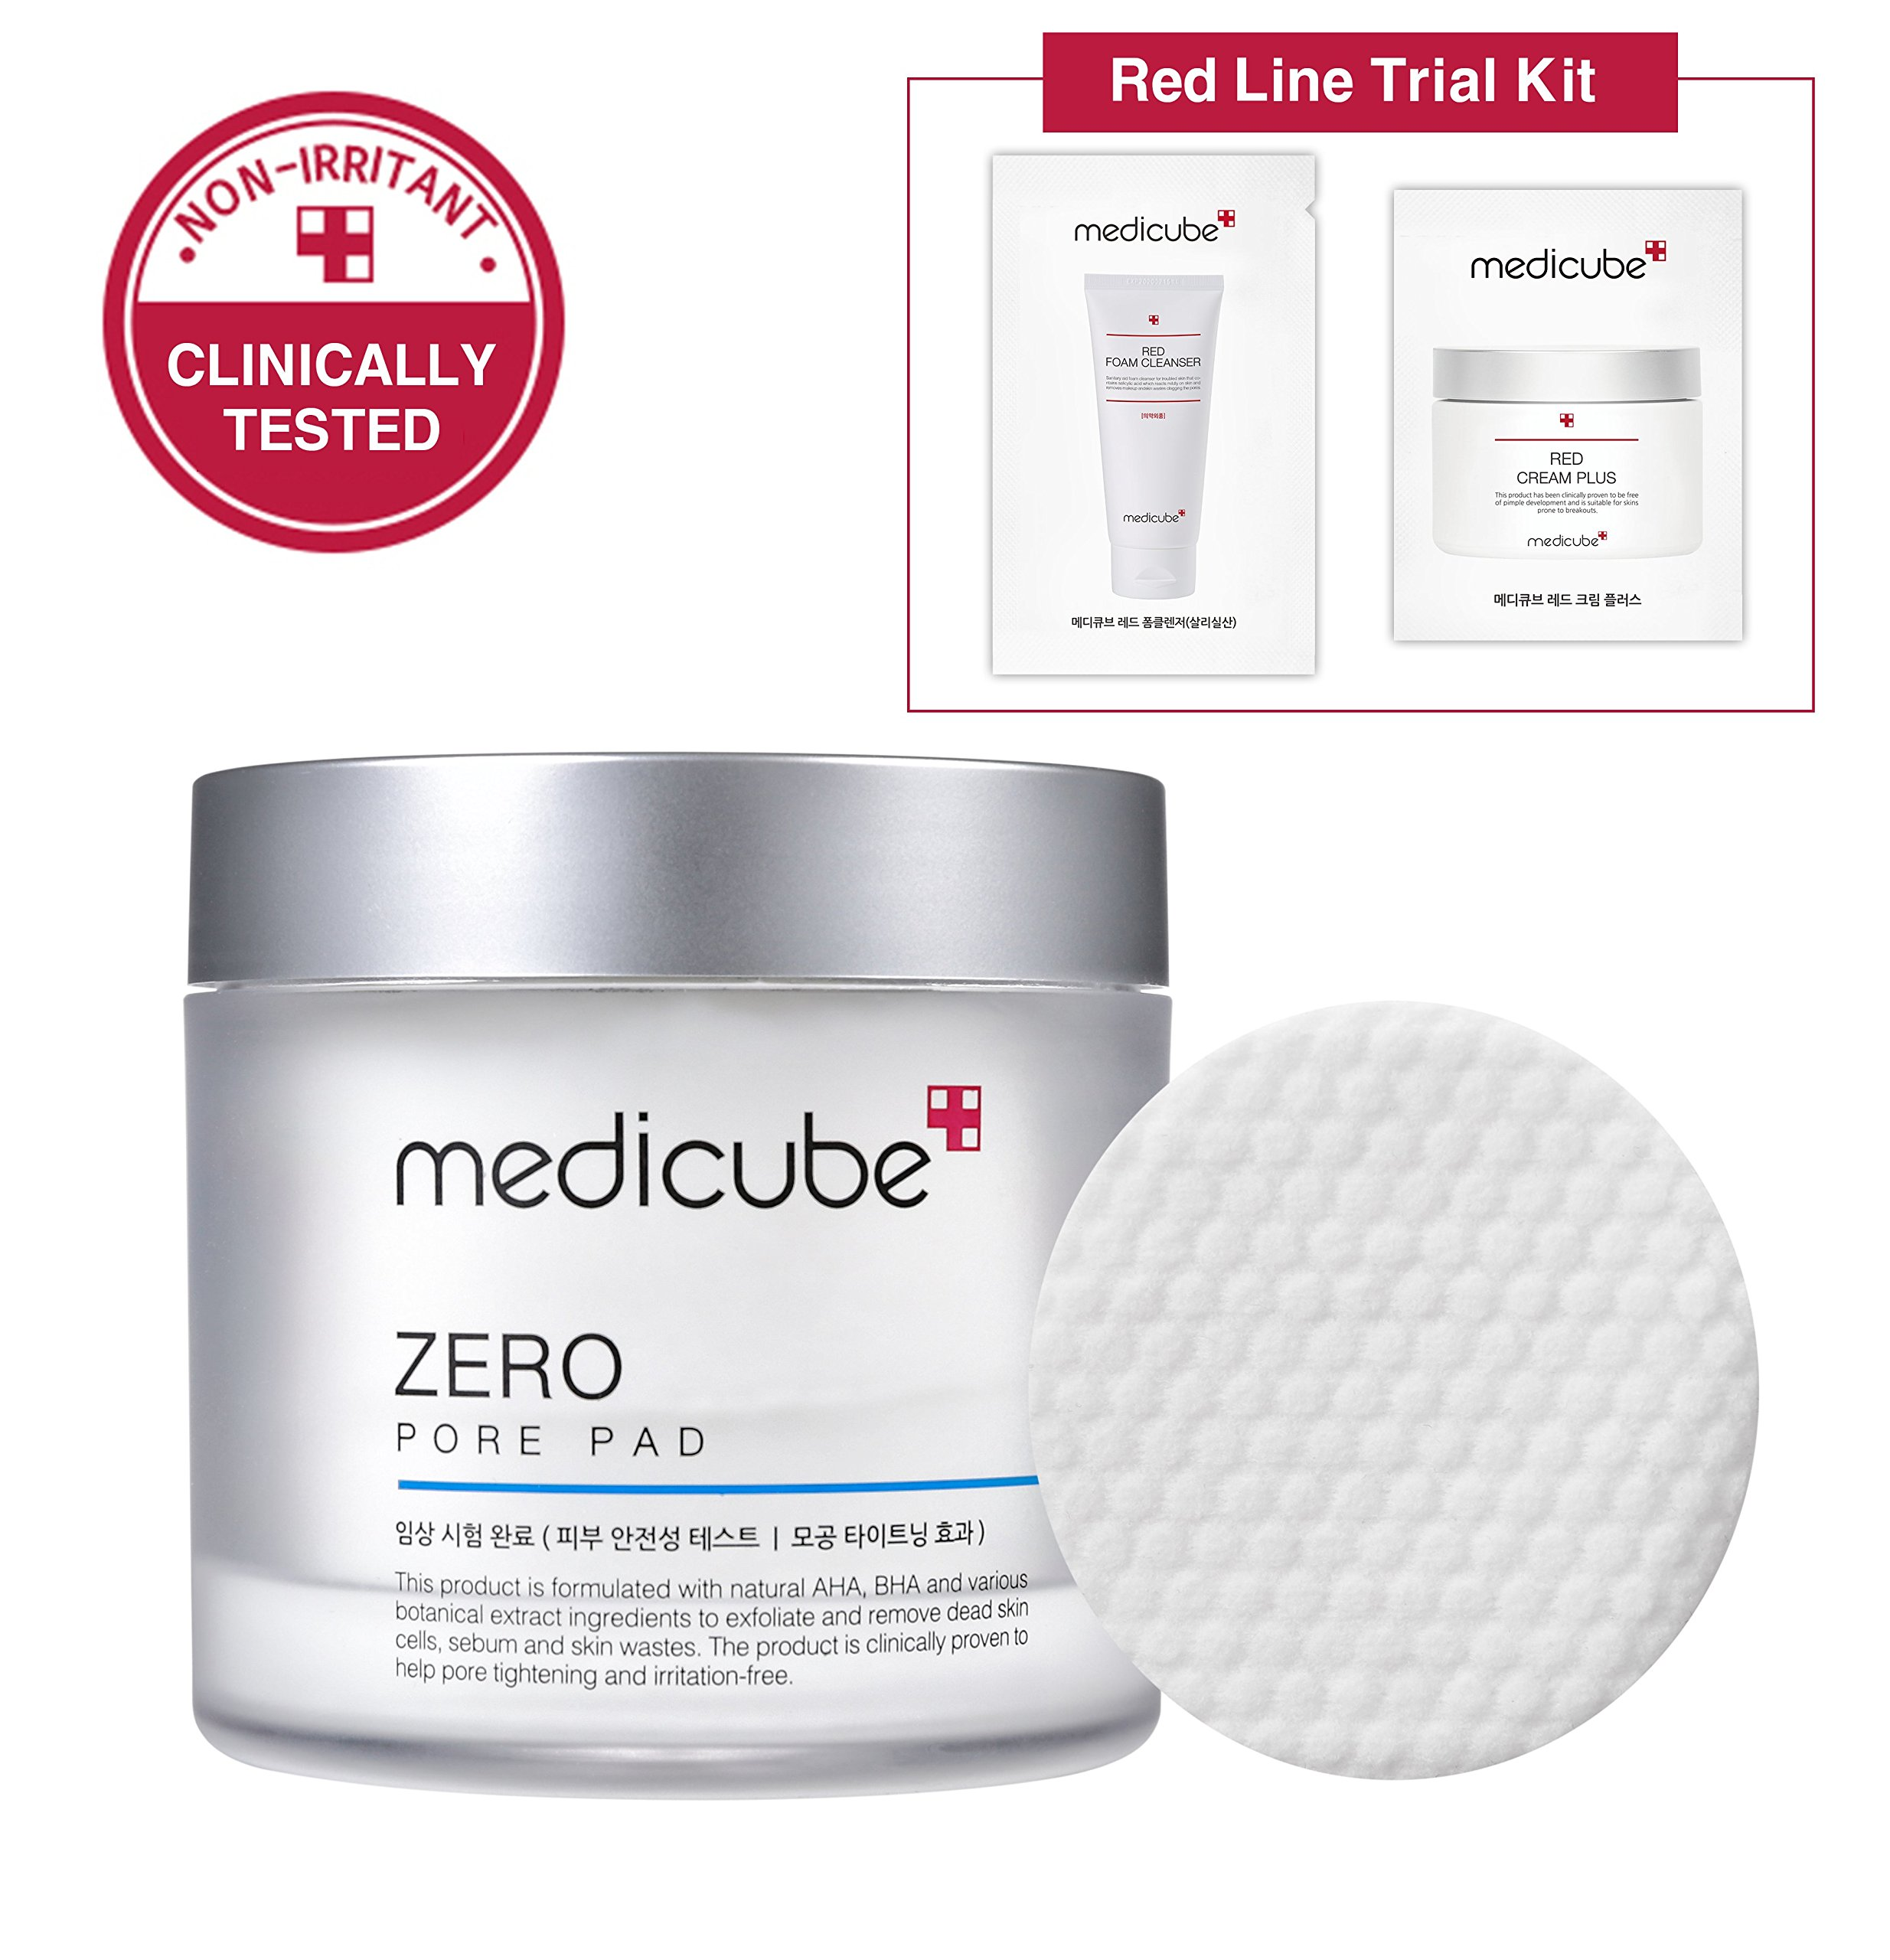 Medicube Zero Pore Pad and Red Line Trial Kit SET, 155 gle 5.47 oz. by Medicube